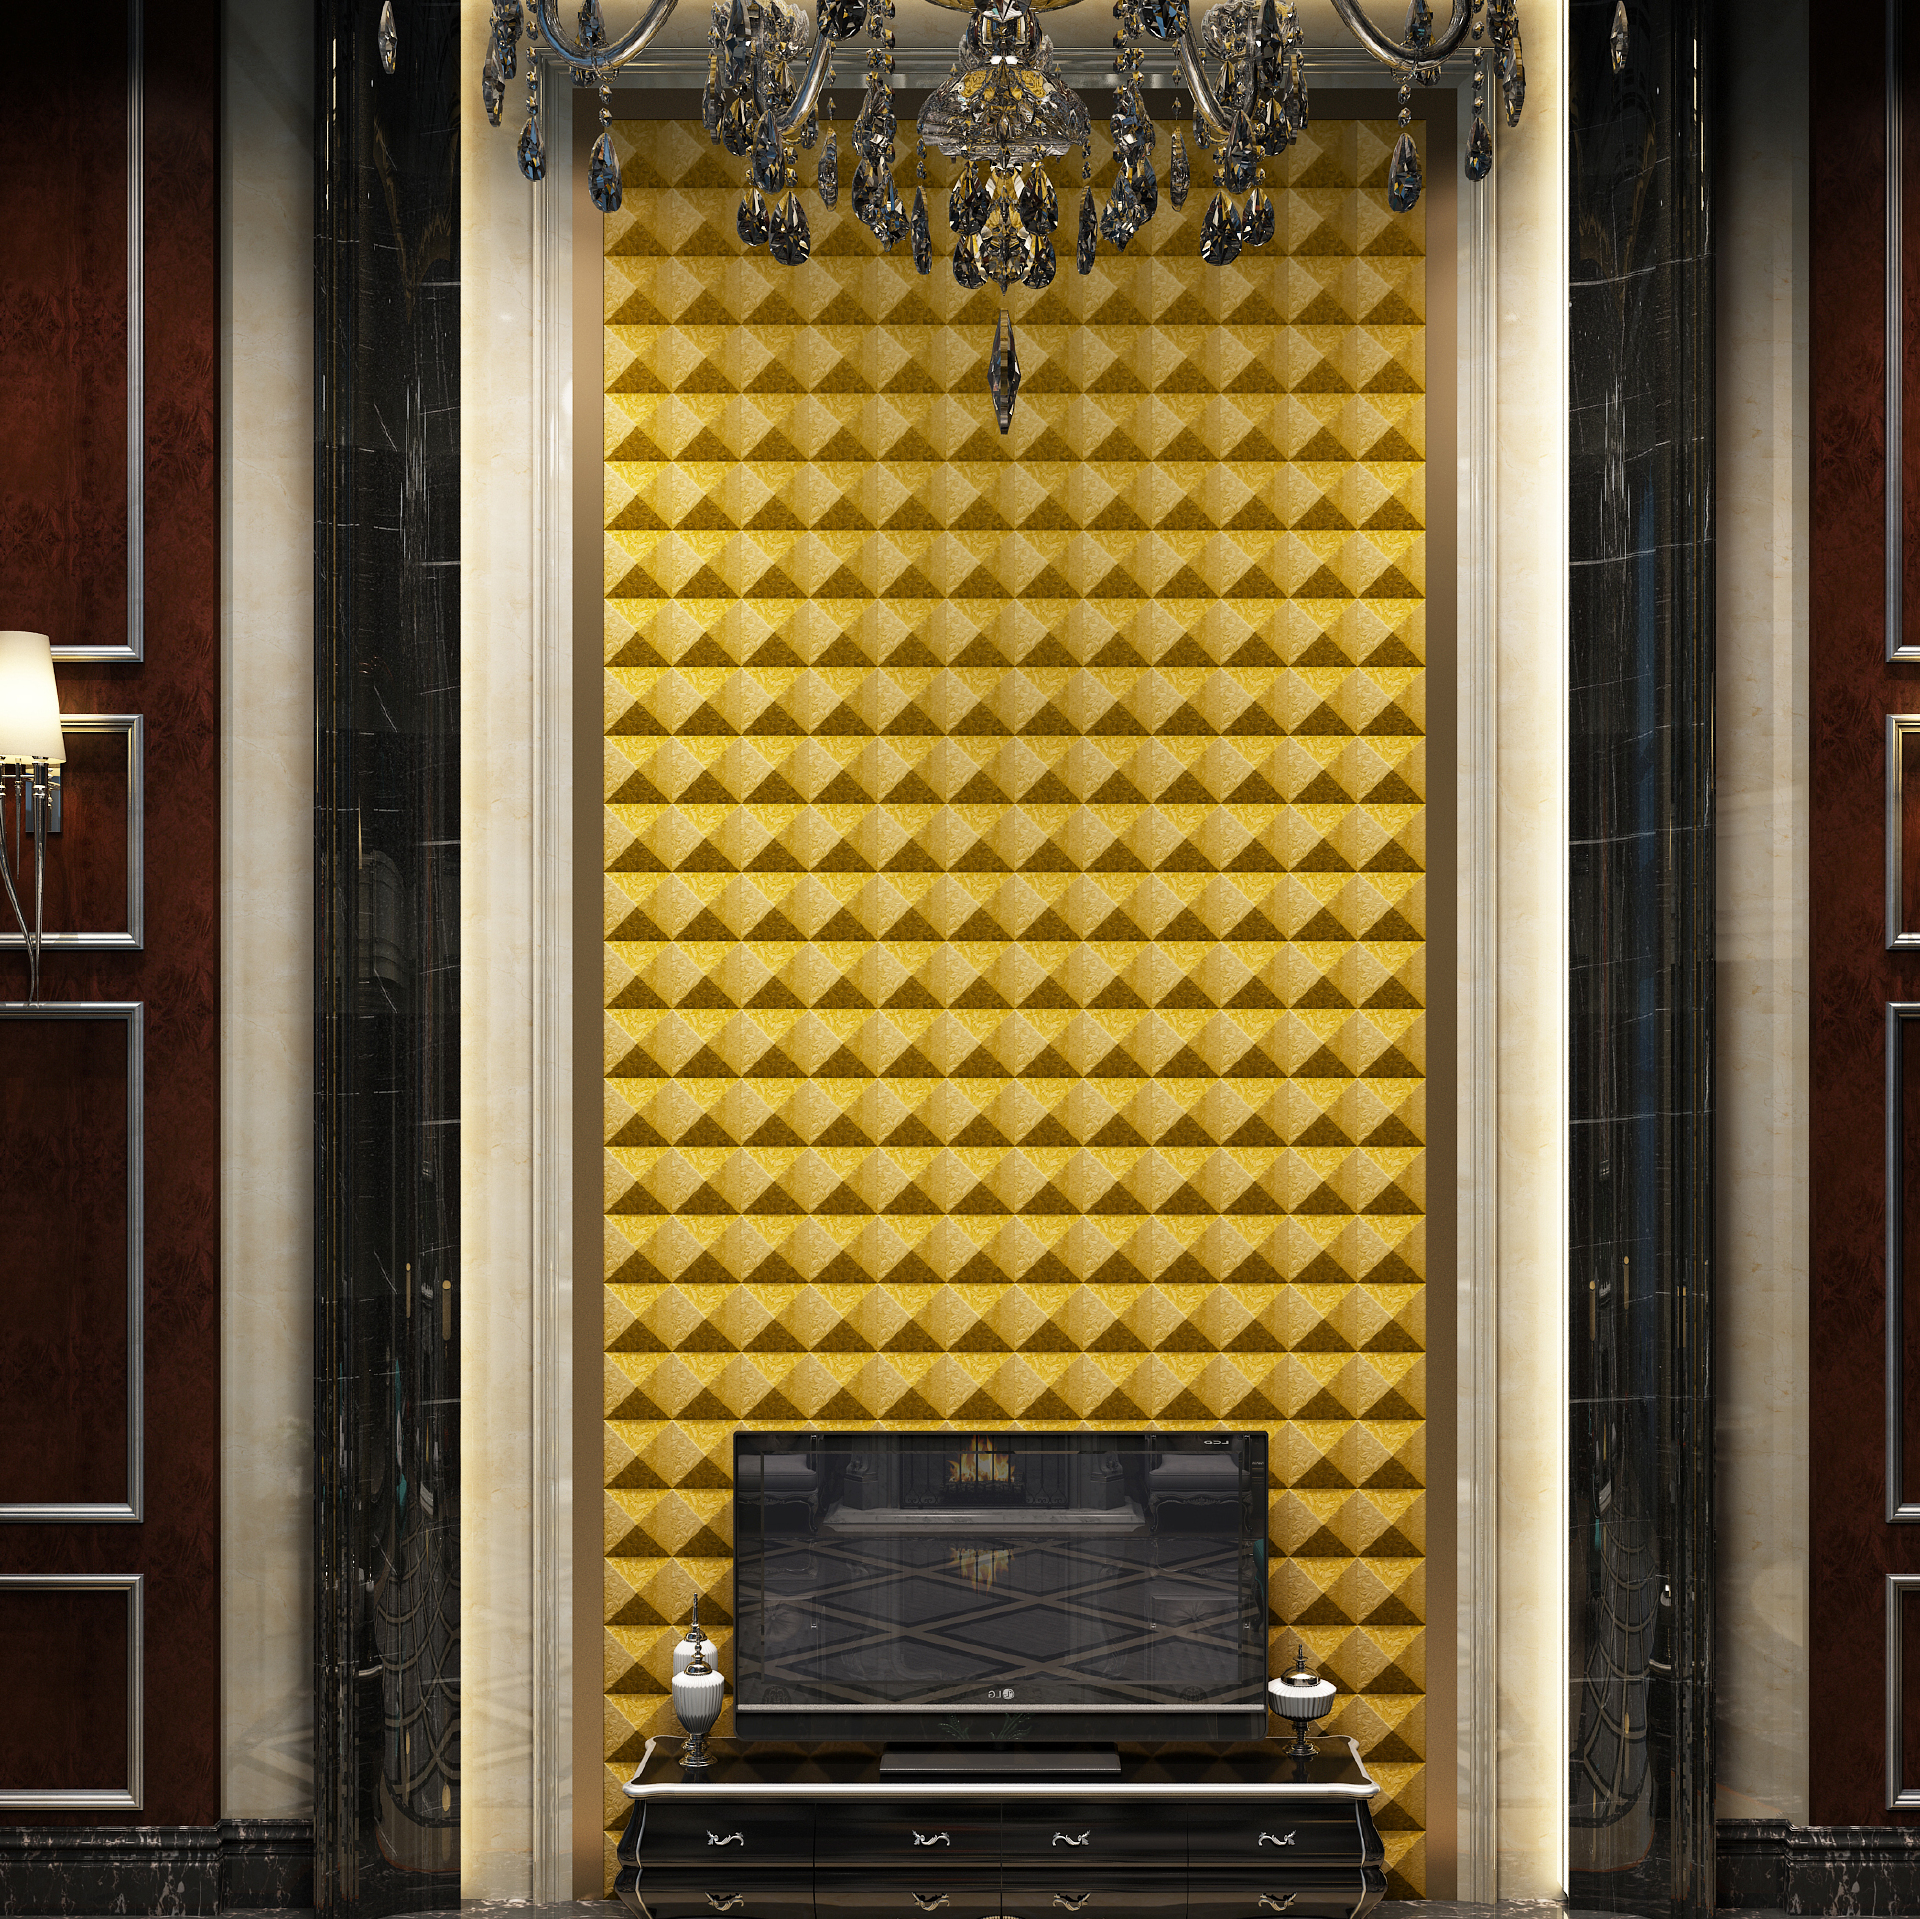 Pyramid Gold 3d Leather Wall Tiles Simple Geometric Designs